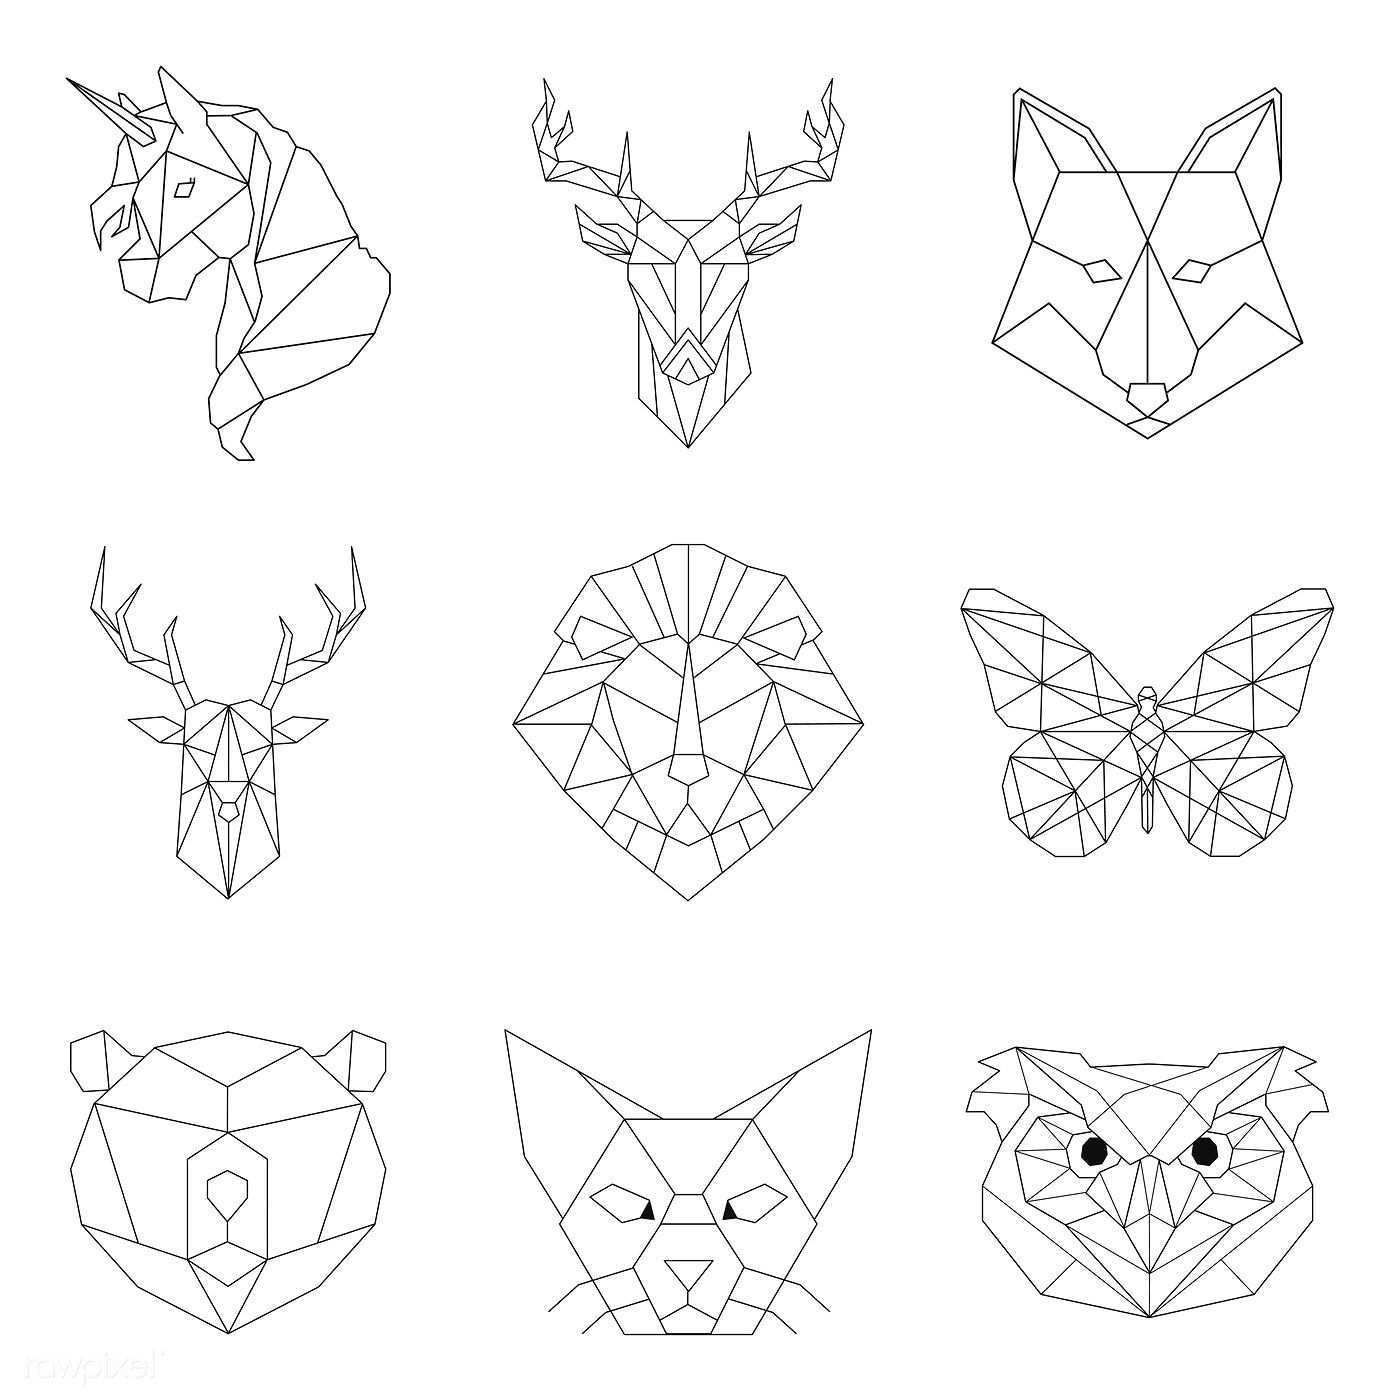 Set Of Animal Linear Illustrations Free Image By Rawpixel Com Poyd Geometric Drawing Geometric Shapes Art Geometric Animals